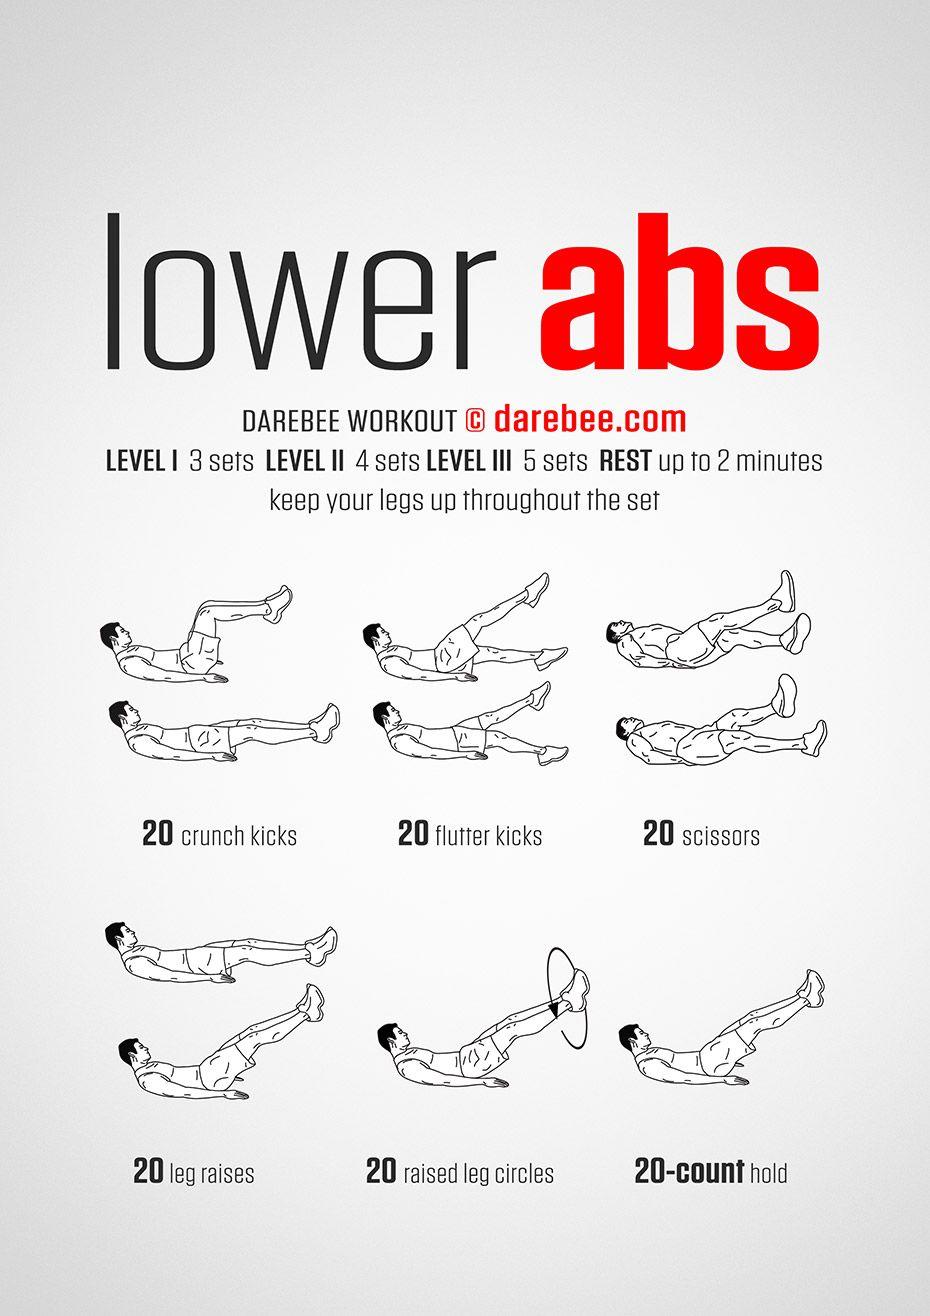 new lower abs workout darebee workout fitness abs [ 930 x 1316 Pixel ]